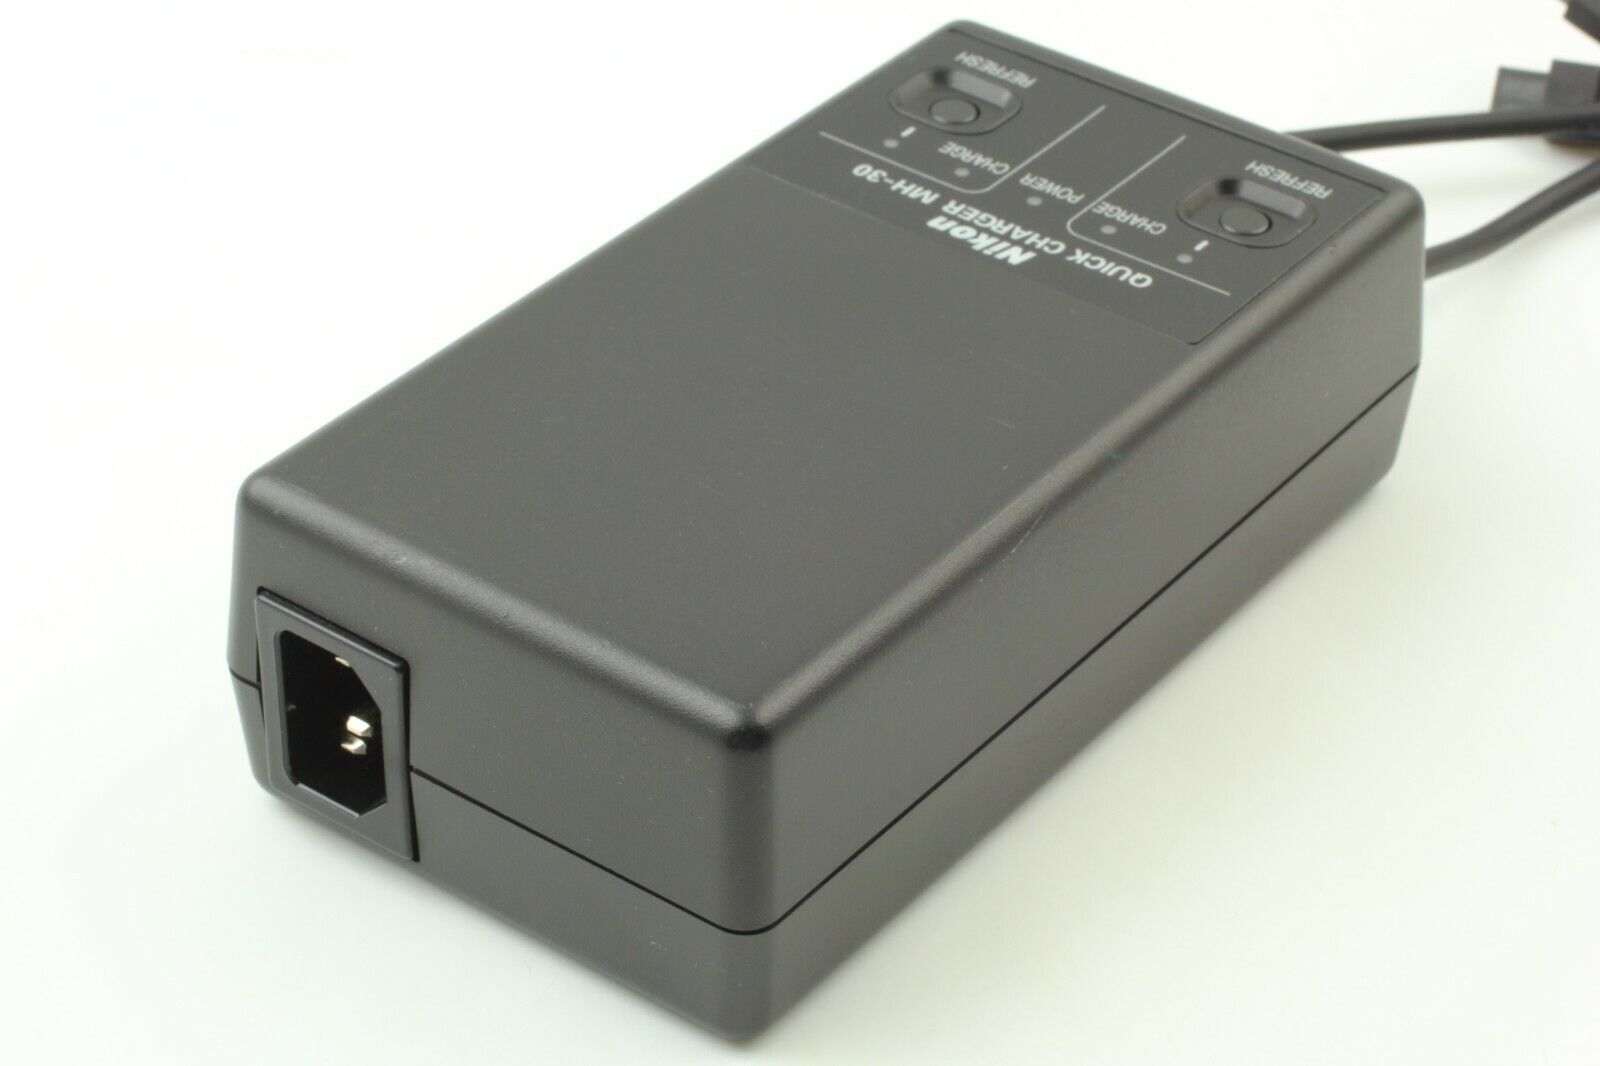 【ALMOST MINT in BOX】Nikon MH-30 Quick Charger for Nikon F5 From JAPAN